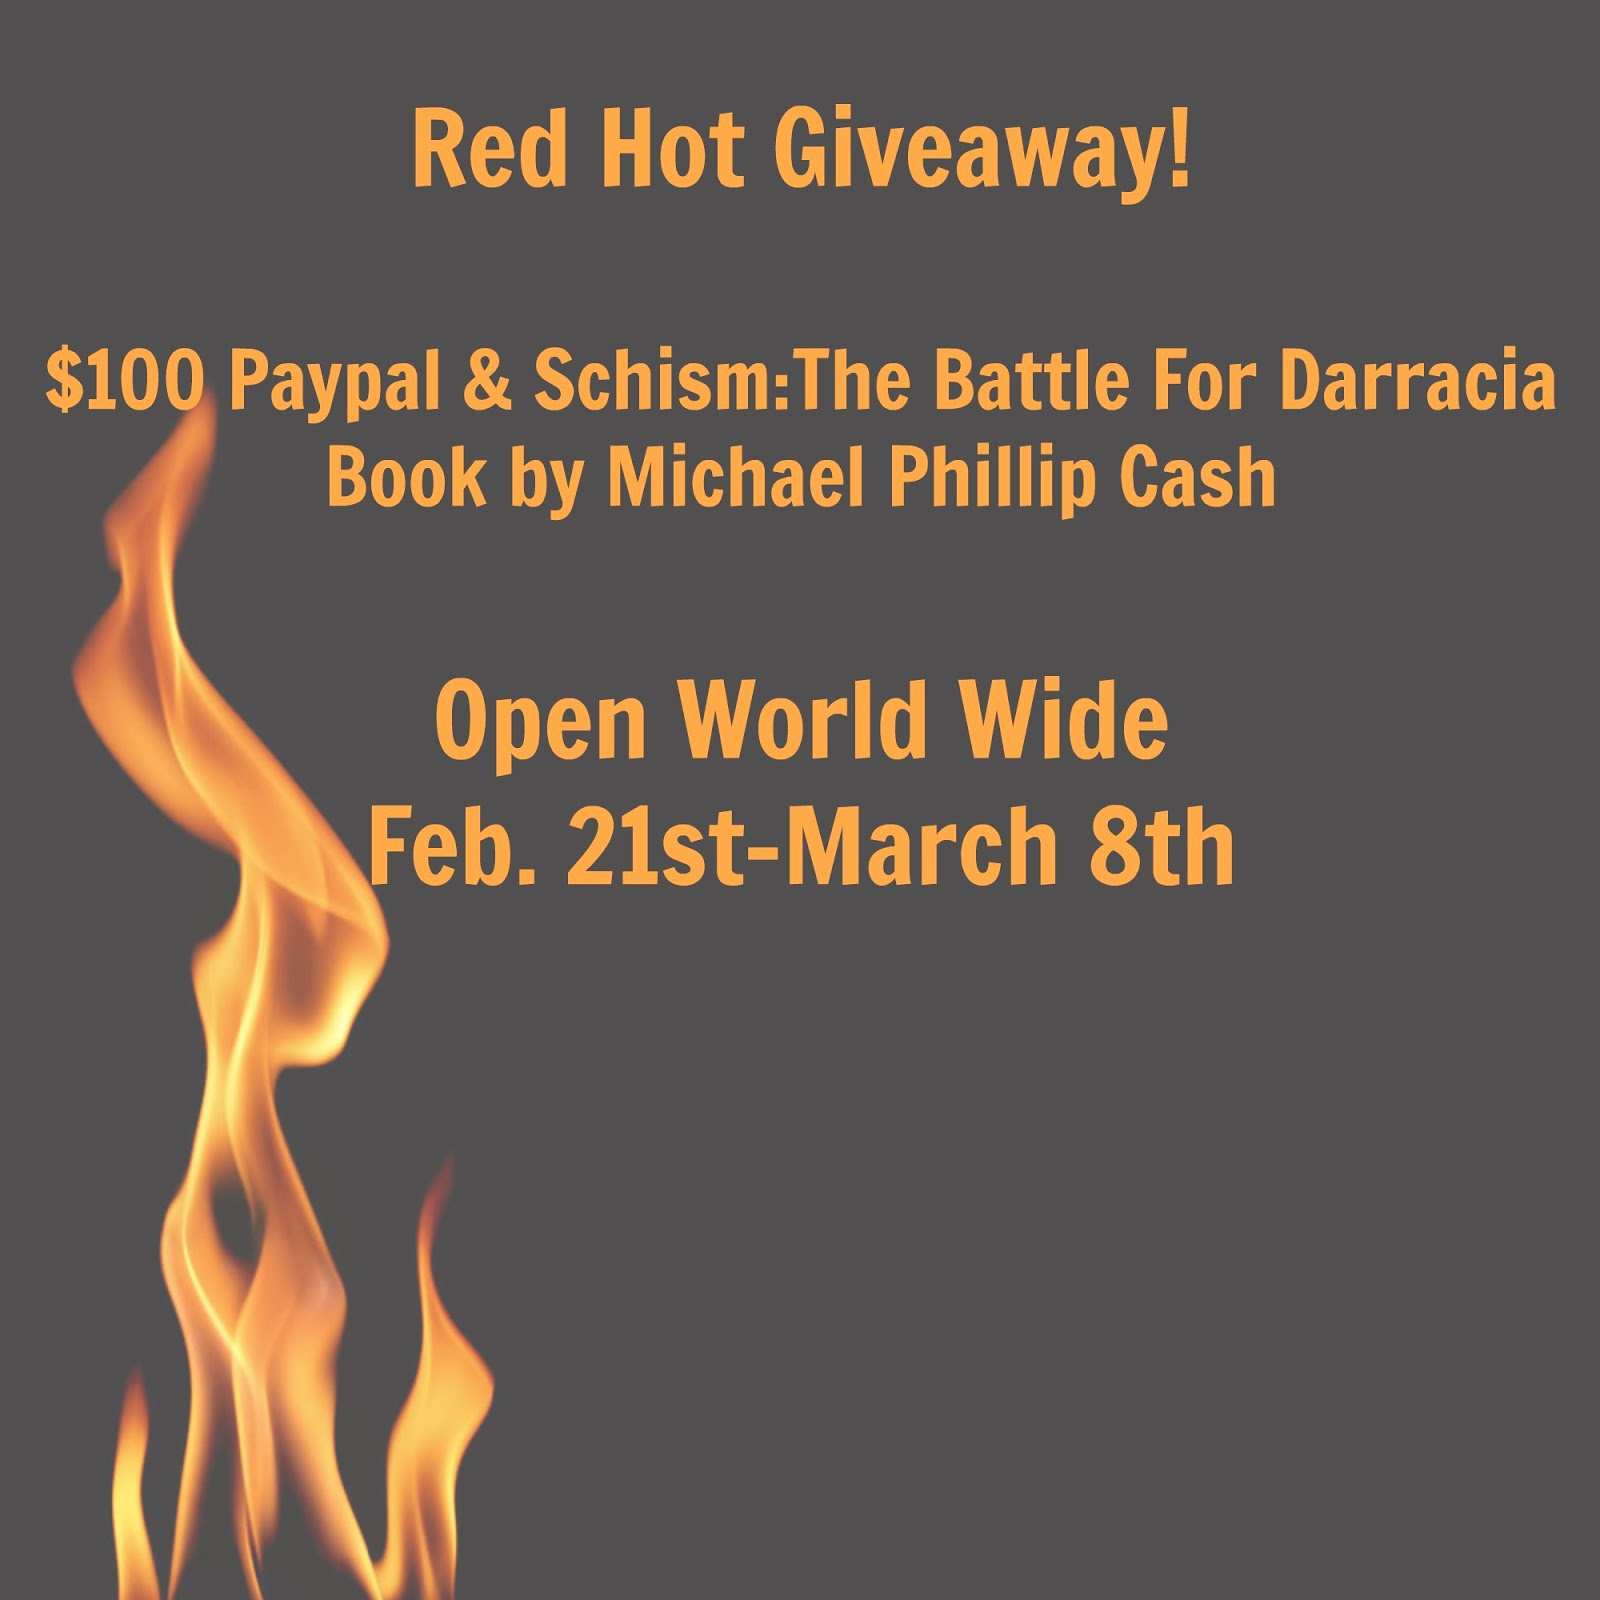 Enter the Schism: The Battle For Darracia $100 Paypal Giveaway. Ends 3/7.